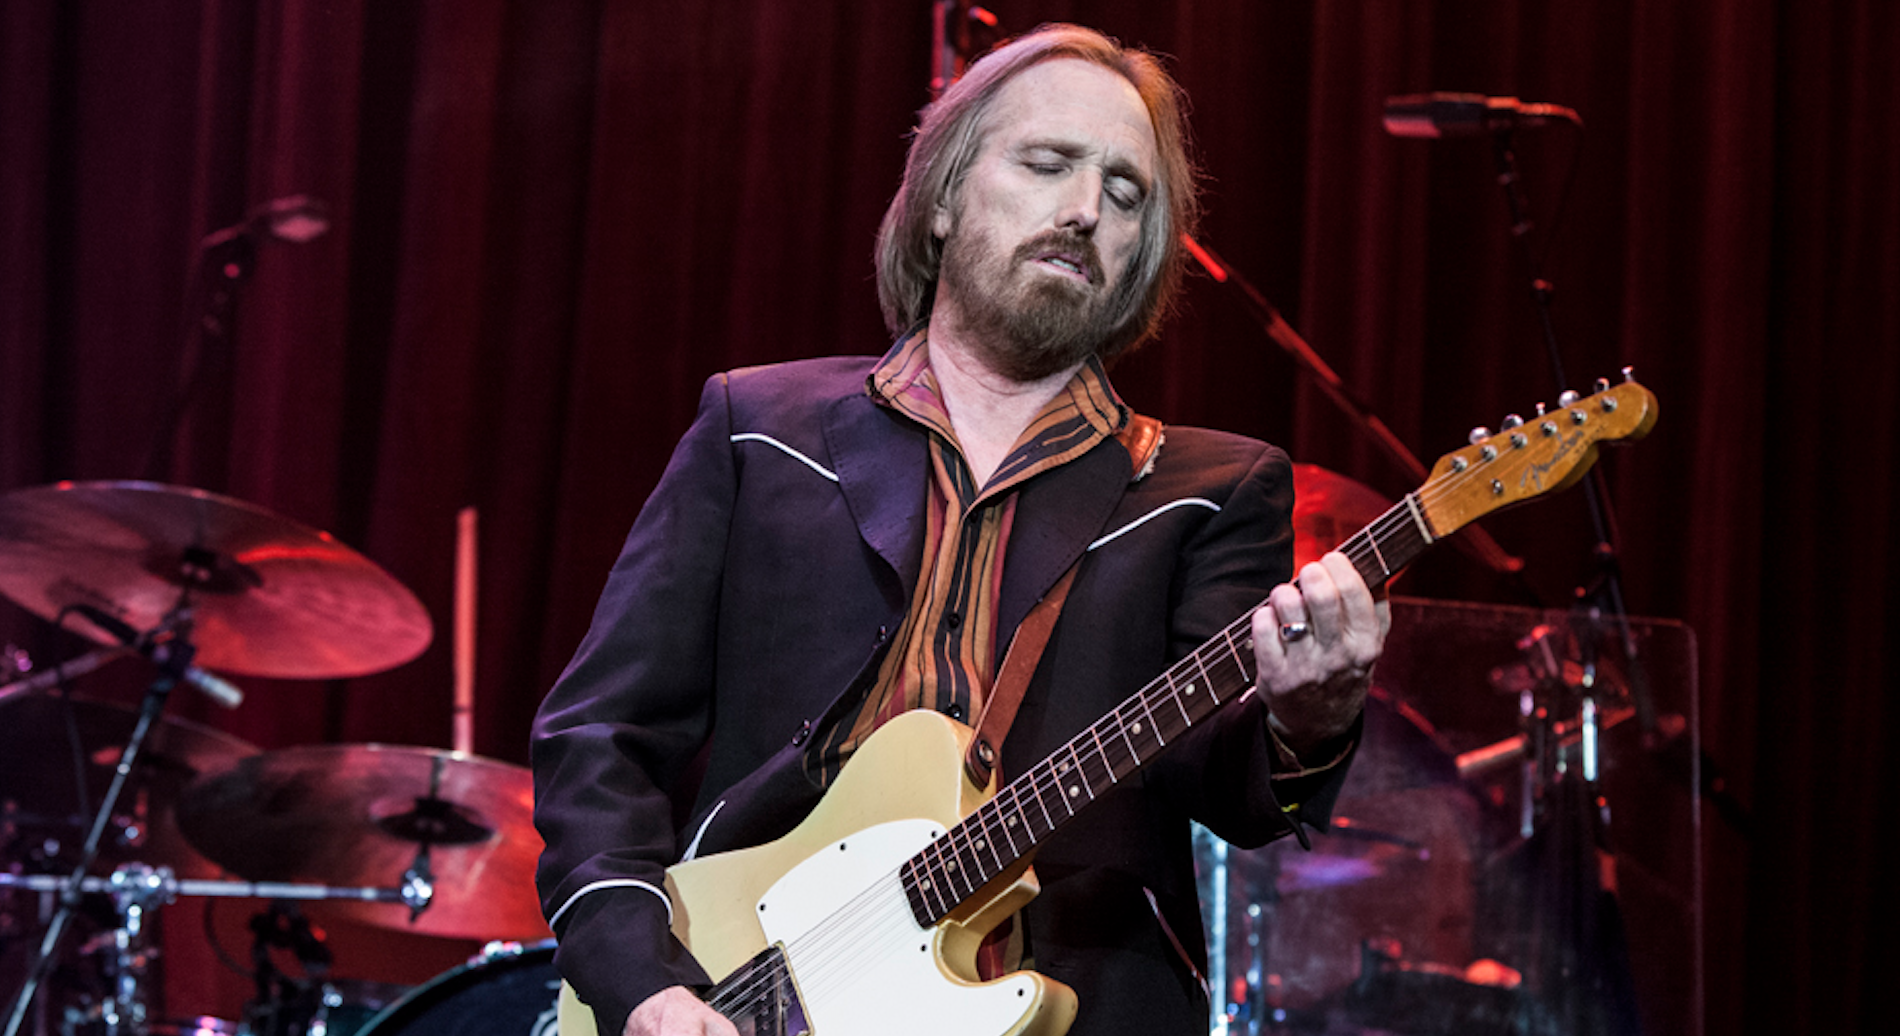 Tom Petty's Legacy Lives on Through Other Artists